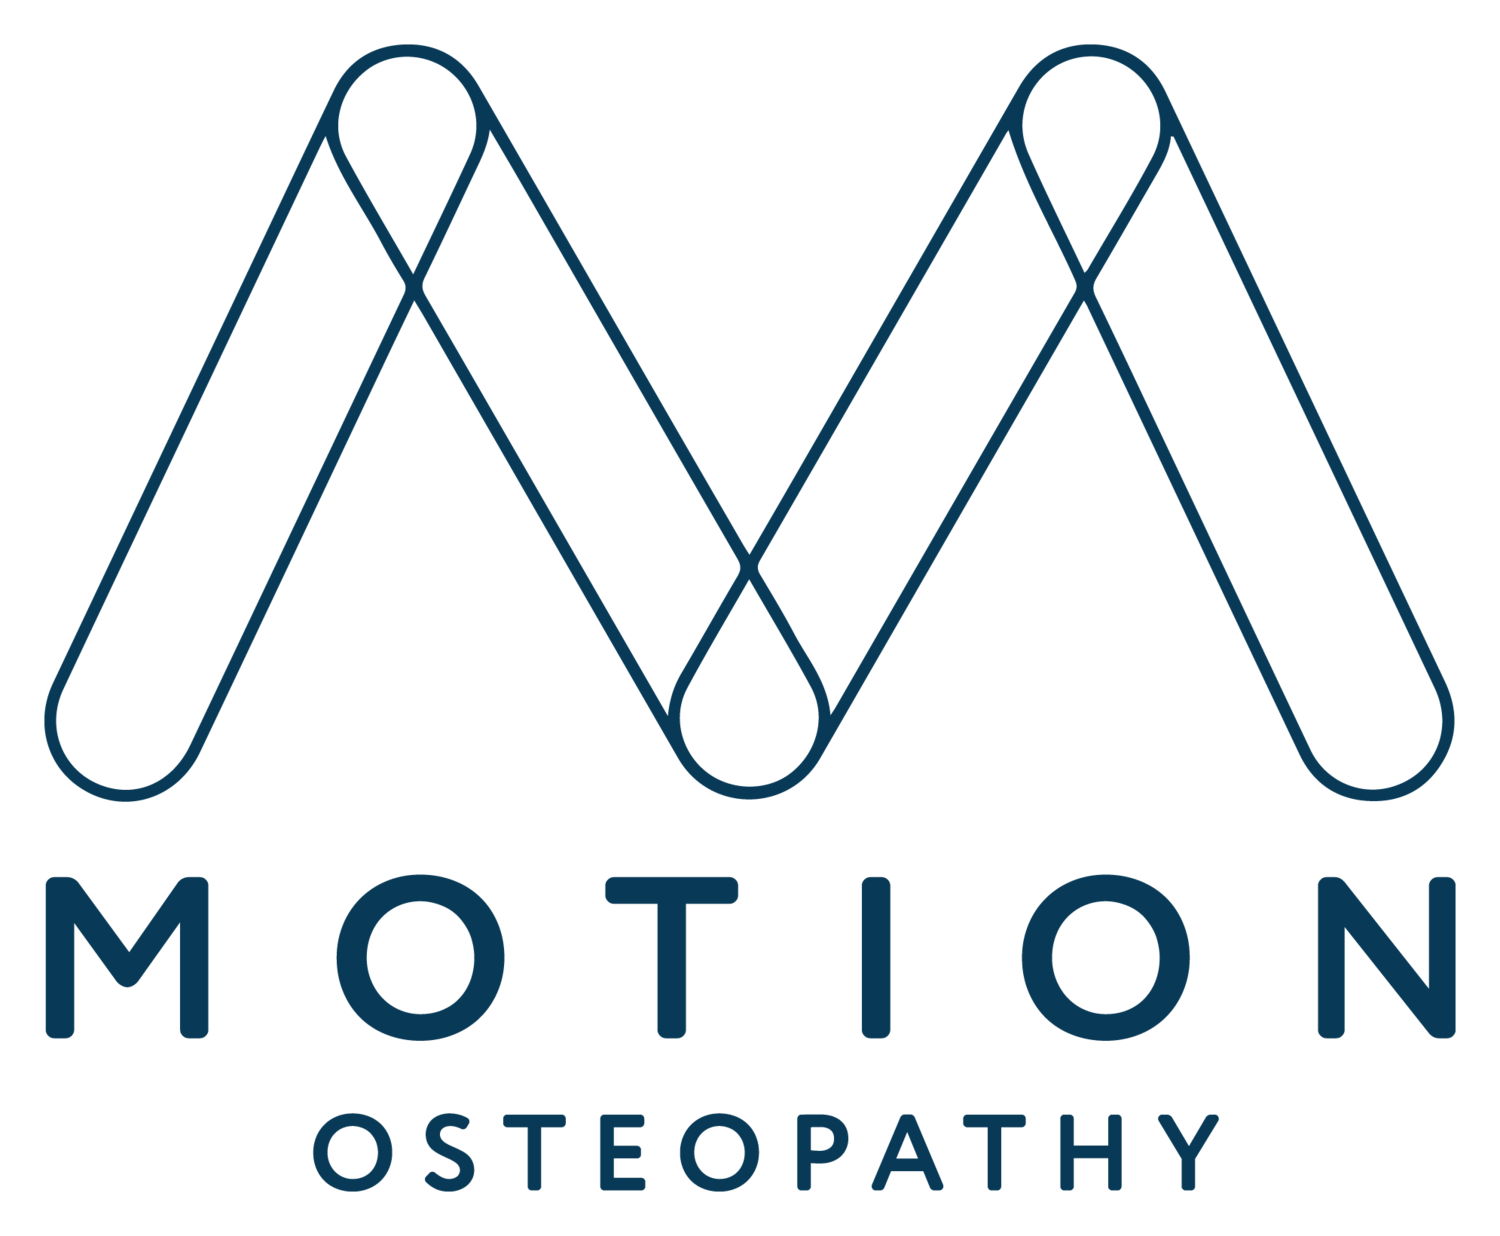 MOTION OSTEOPATHY